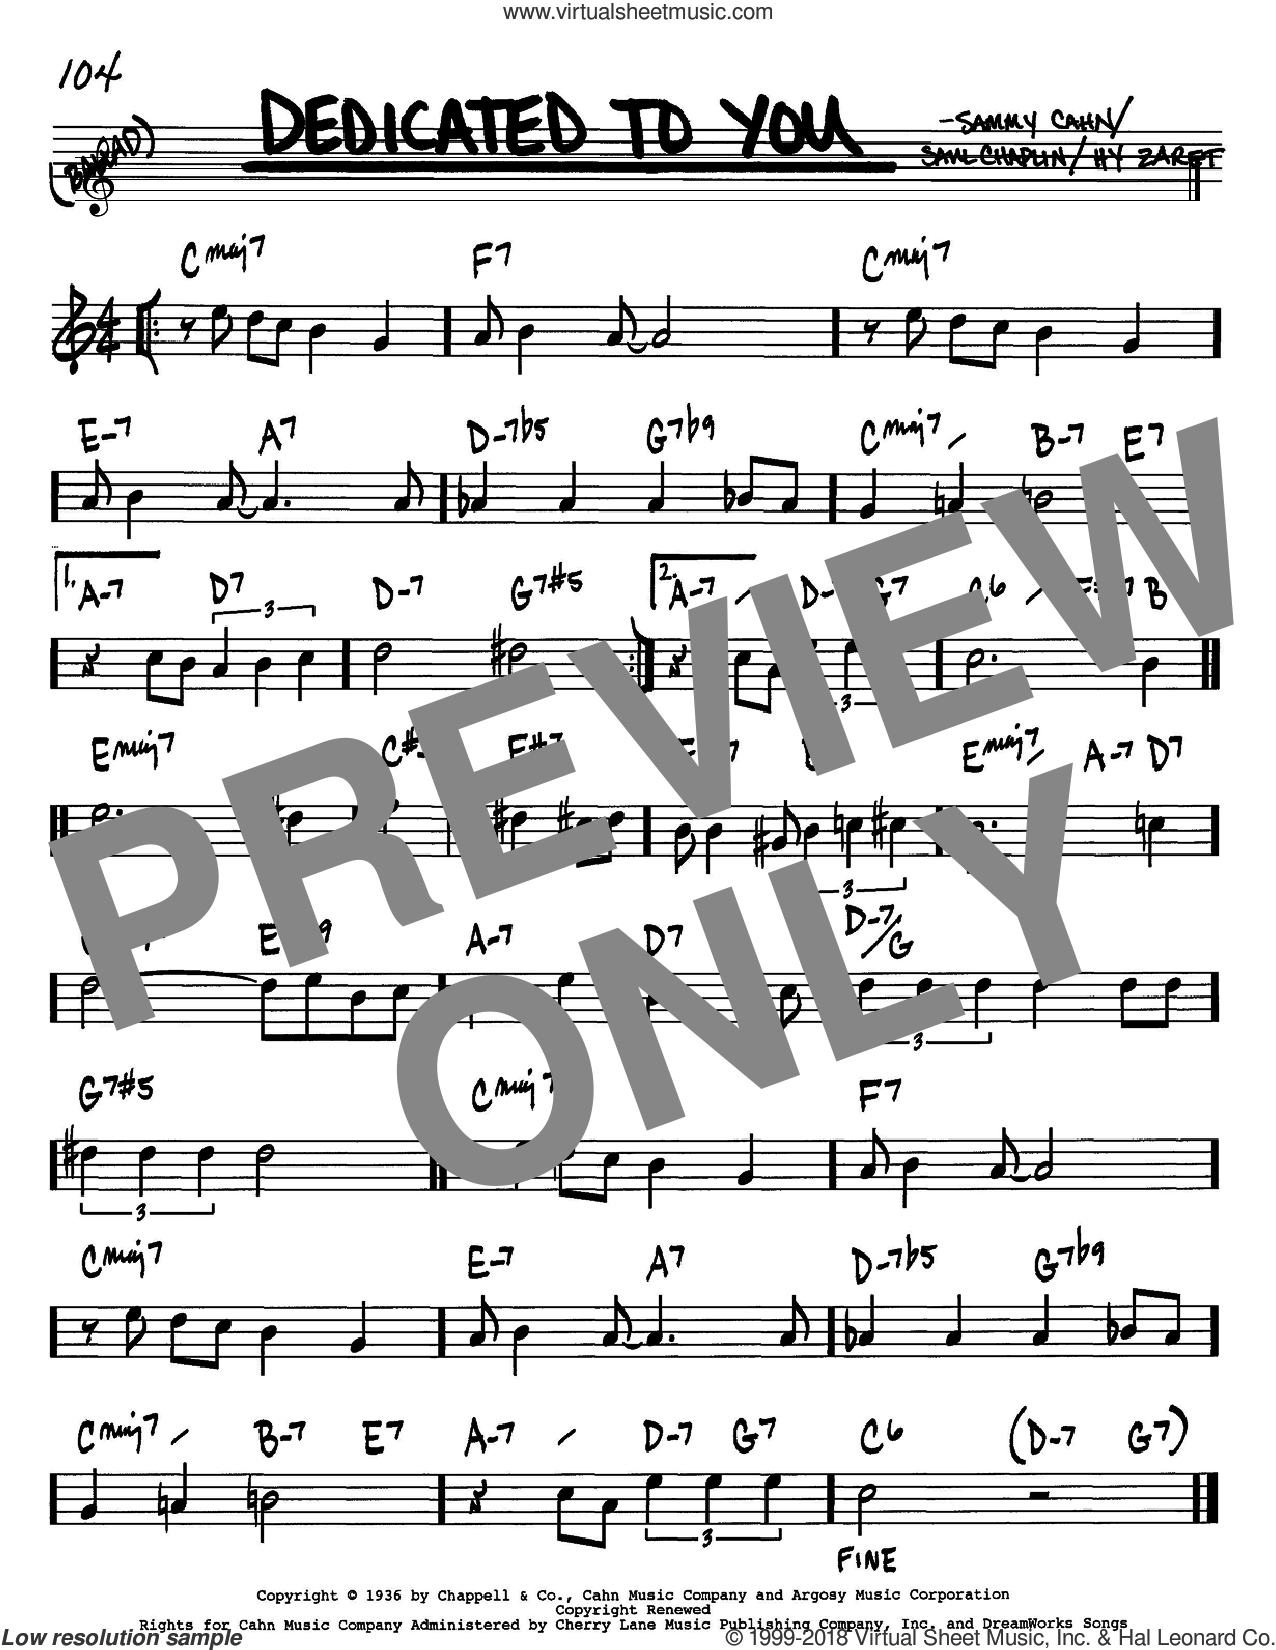 Dedicated To You sheet music for voice and other instruments (in Bb) by Sammy Cahn, Hy Zaret and Saul Chaplin, intermediate skill level